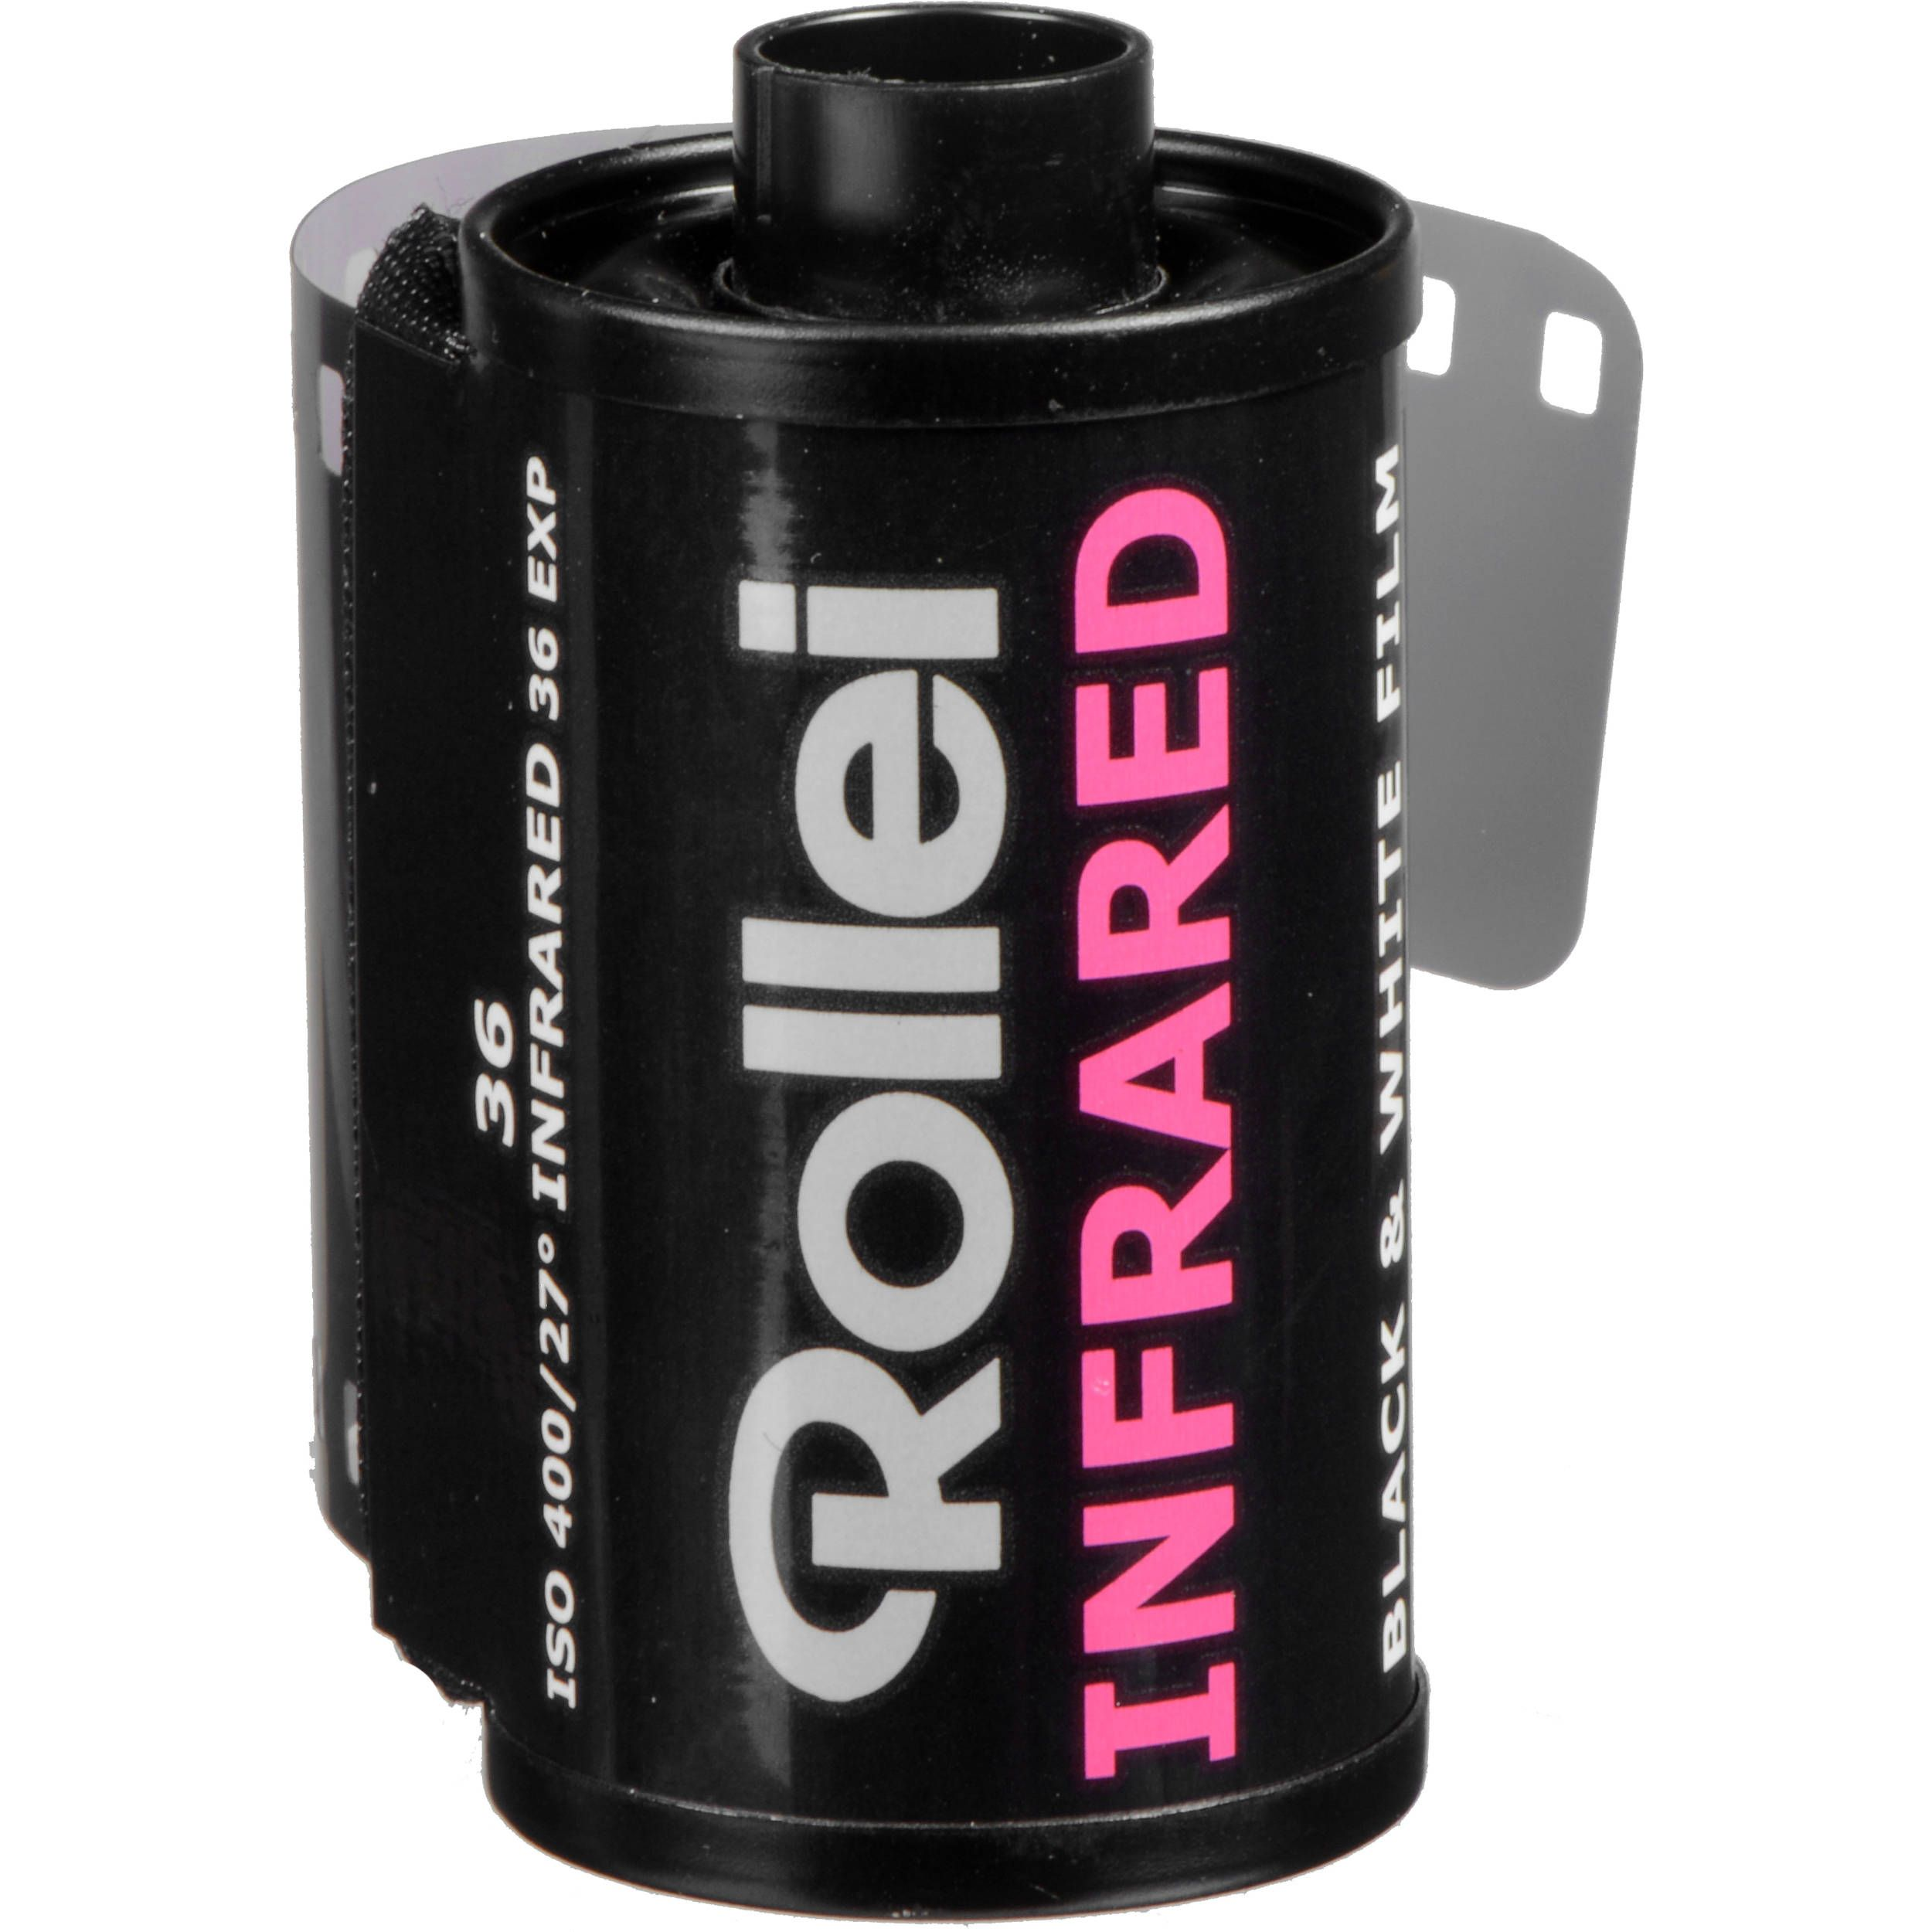 Rollei Infrared 400 Black and White Negative Film (35mm Roll Film, 36 Exposures)